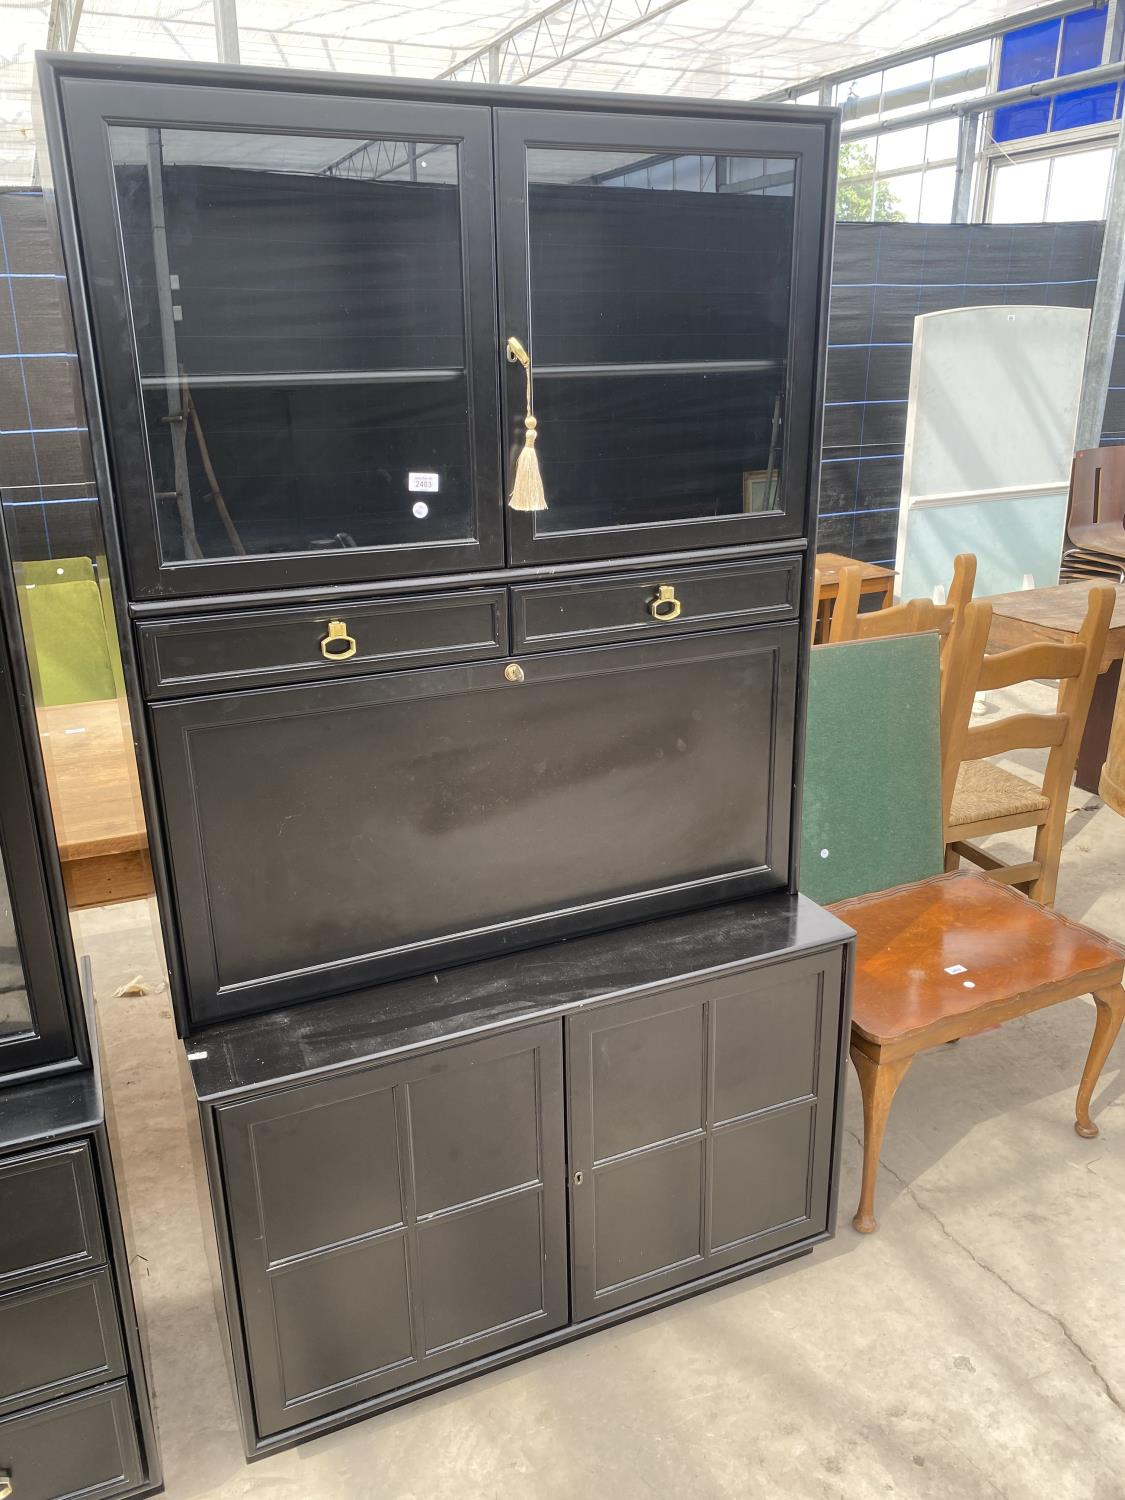 """TWO MODERN BLACK LOUNGE UNITS, EACH 39"""" WIDE - Image 2 of 6"""